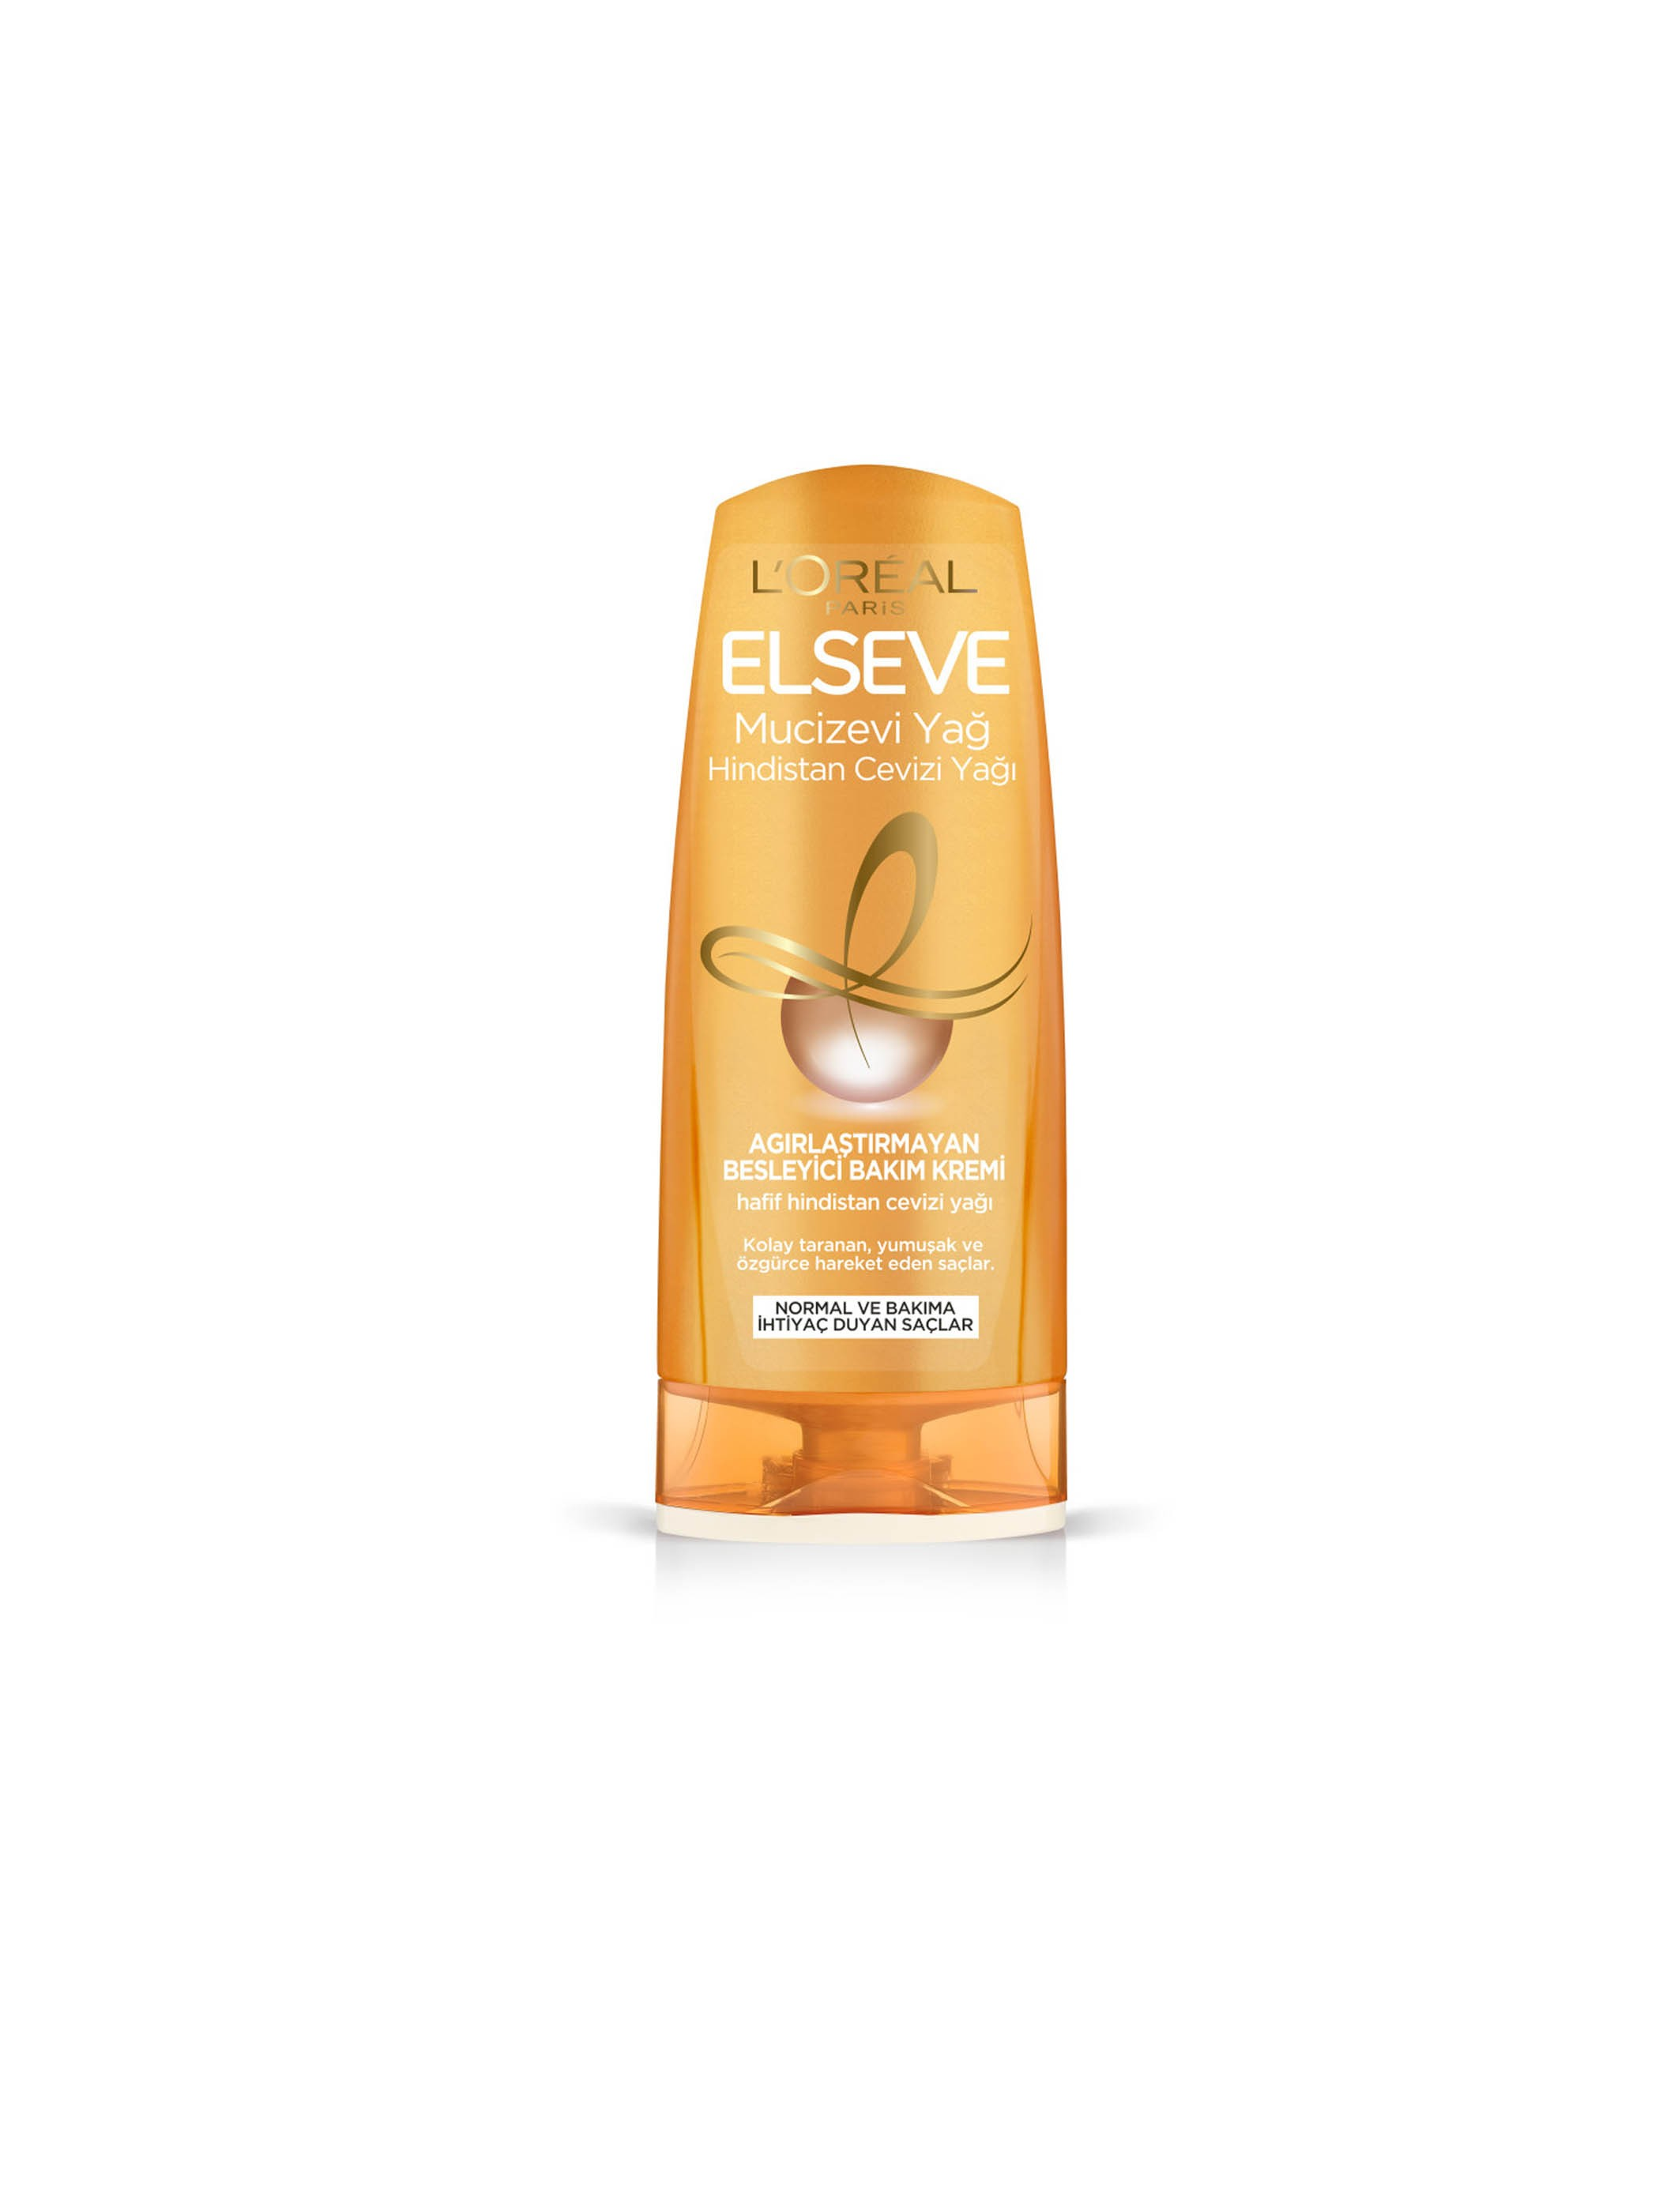 MIX - Elsever the Miraculous Hind. Walnut Oil Weightless Nourishing Conditioner 360ml - S1HQ86Z8